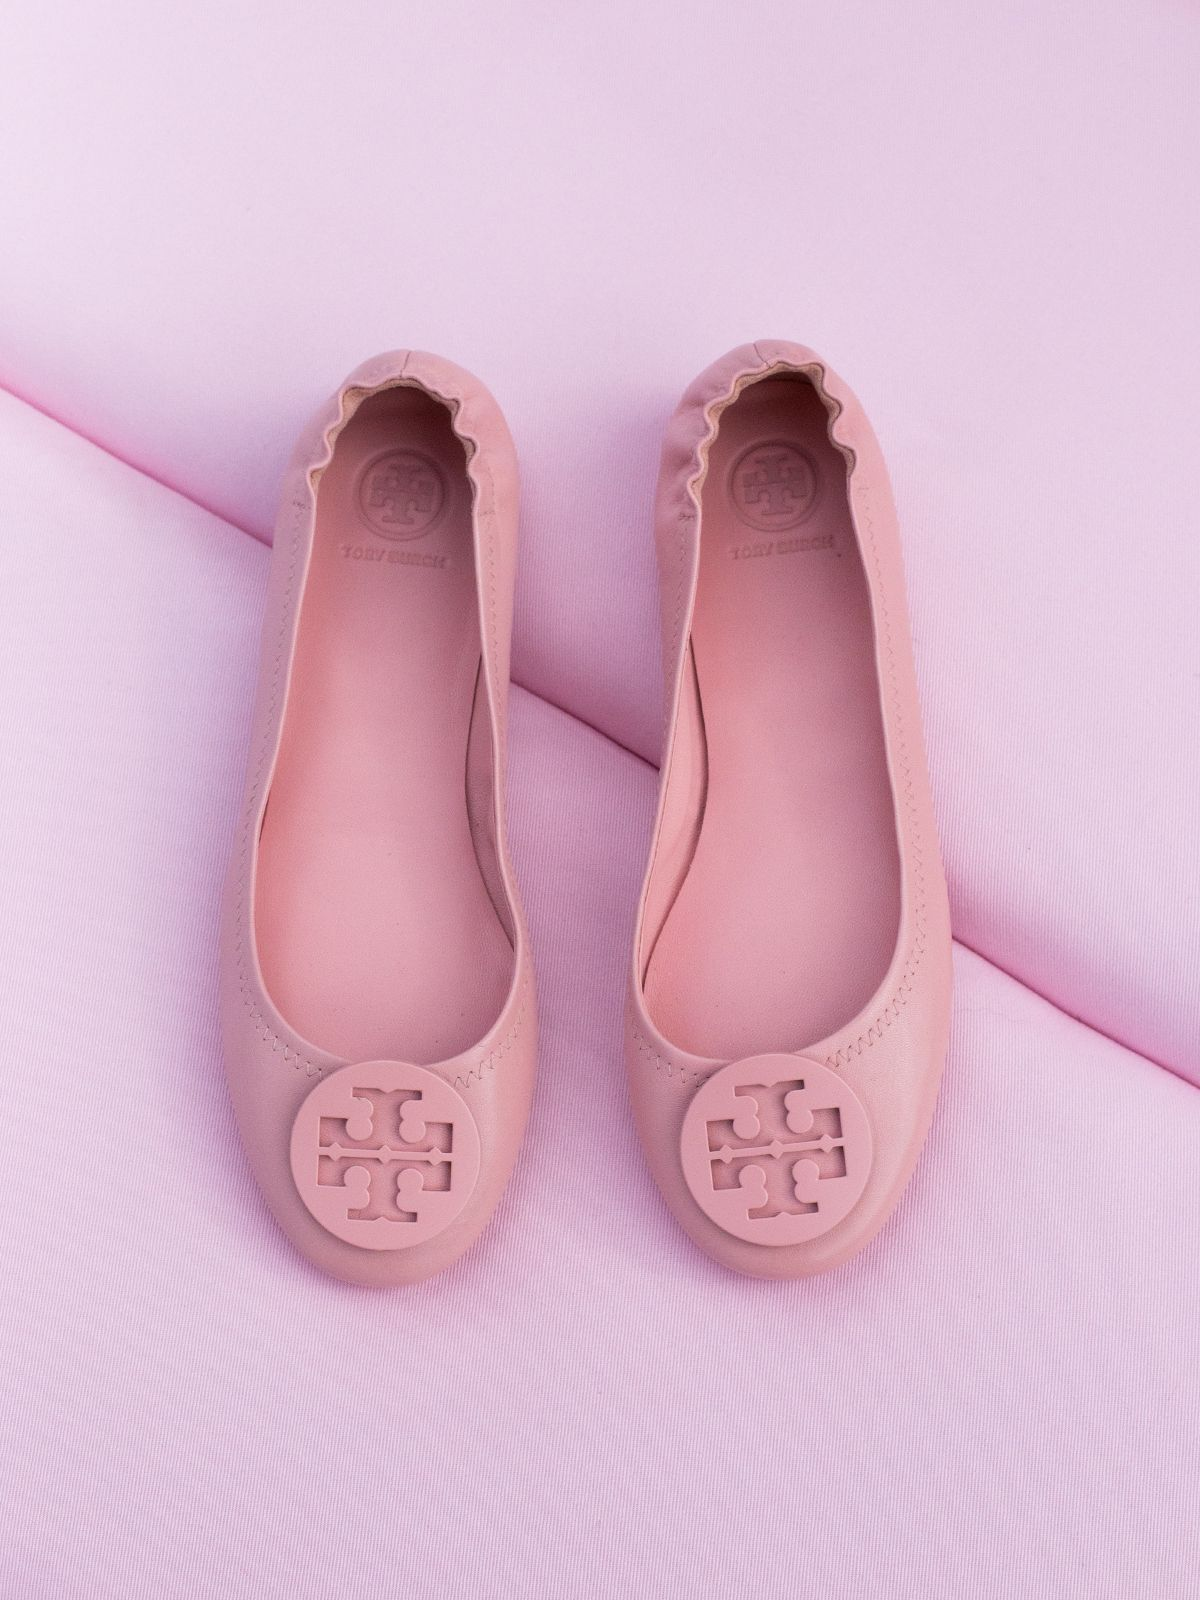 8de947592e7f2 Tory Burch Minnie Flats